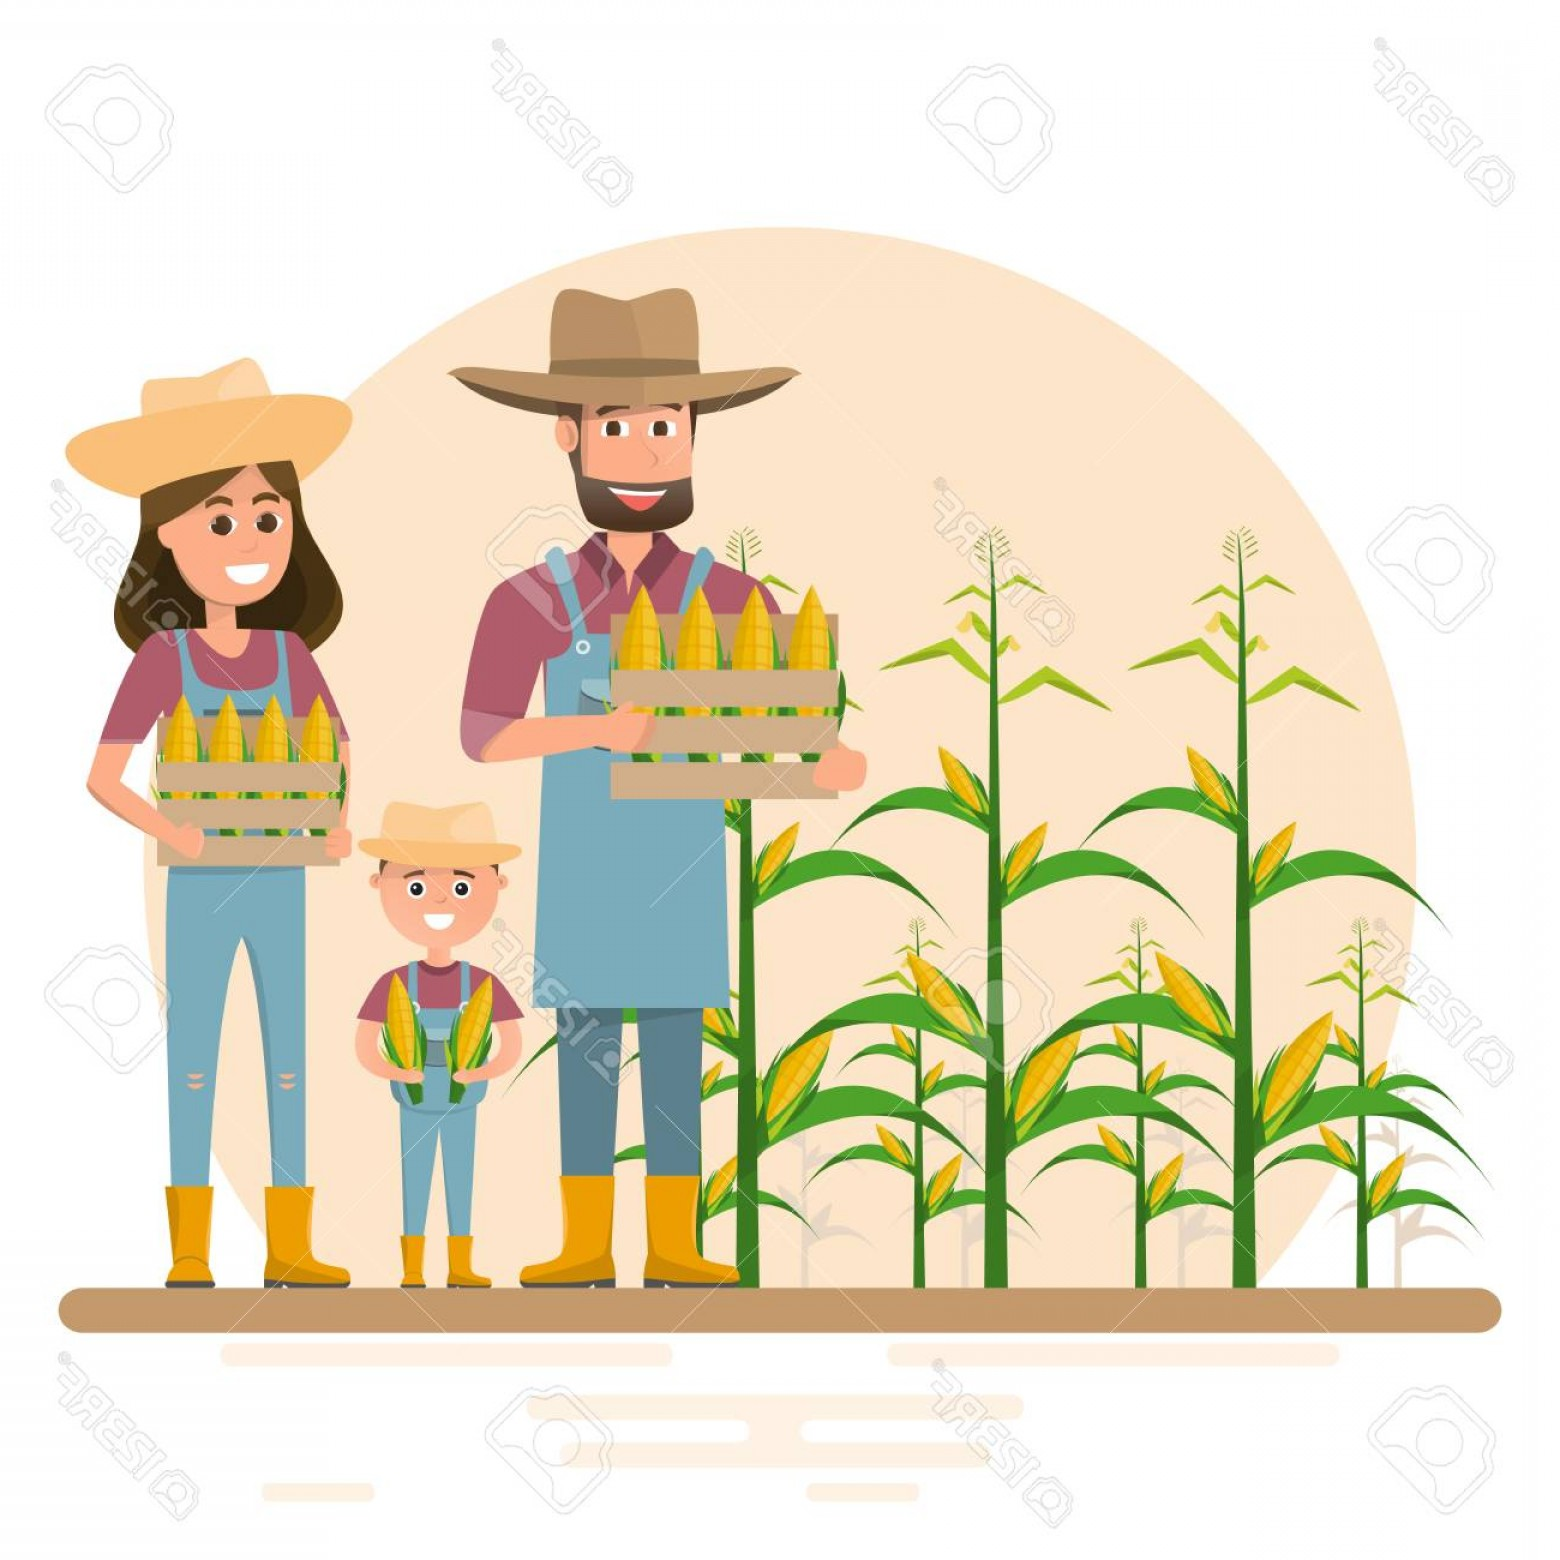 Redneck Family Vector Graphic: Photostock Vector Happy Farmer Family Cartoon Character In Organic Rural Farm Vector Illustration